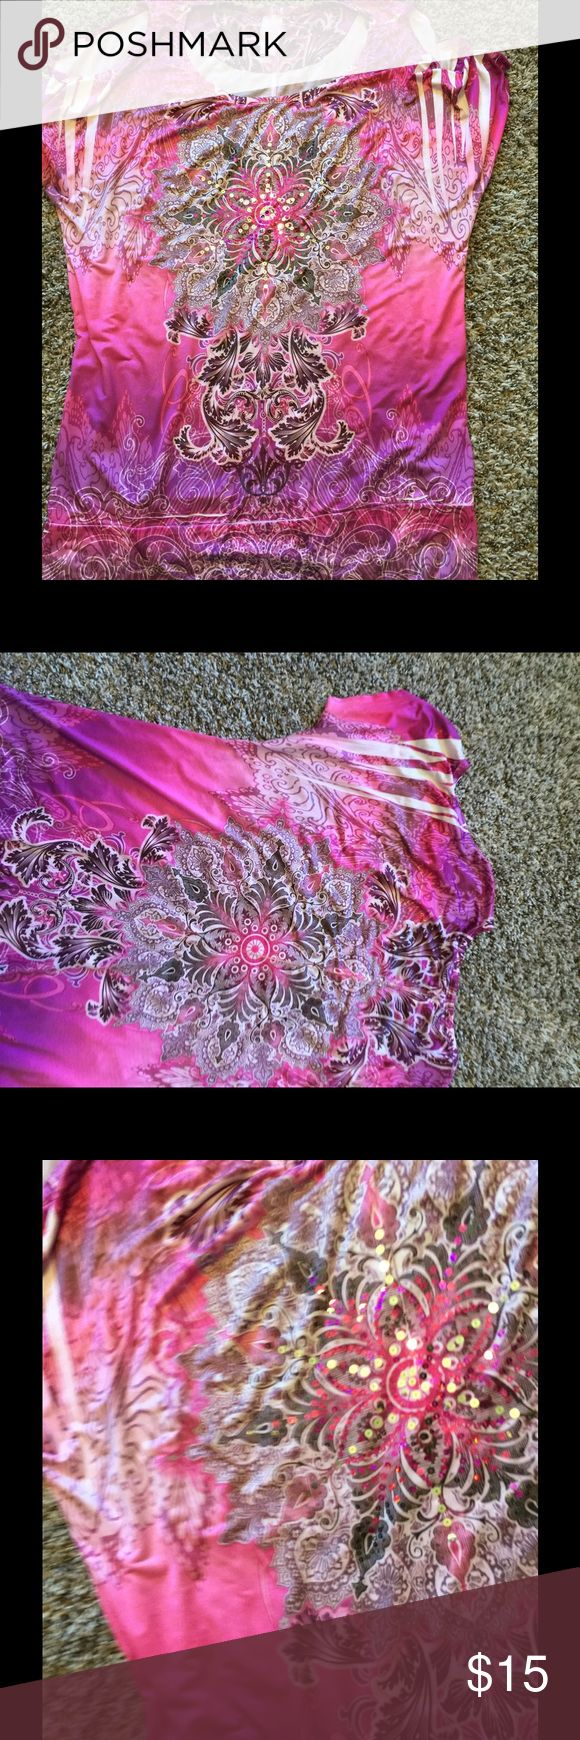 Cold shoulder Pink women's top 2X Beautiful pink with sequin design.  Size 2X Tops Blouses